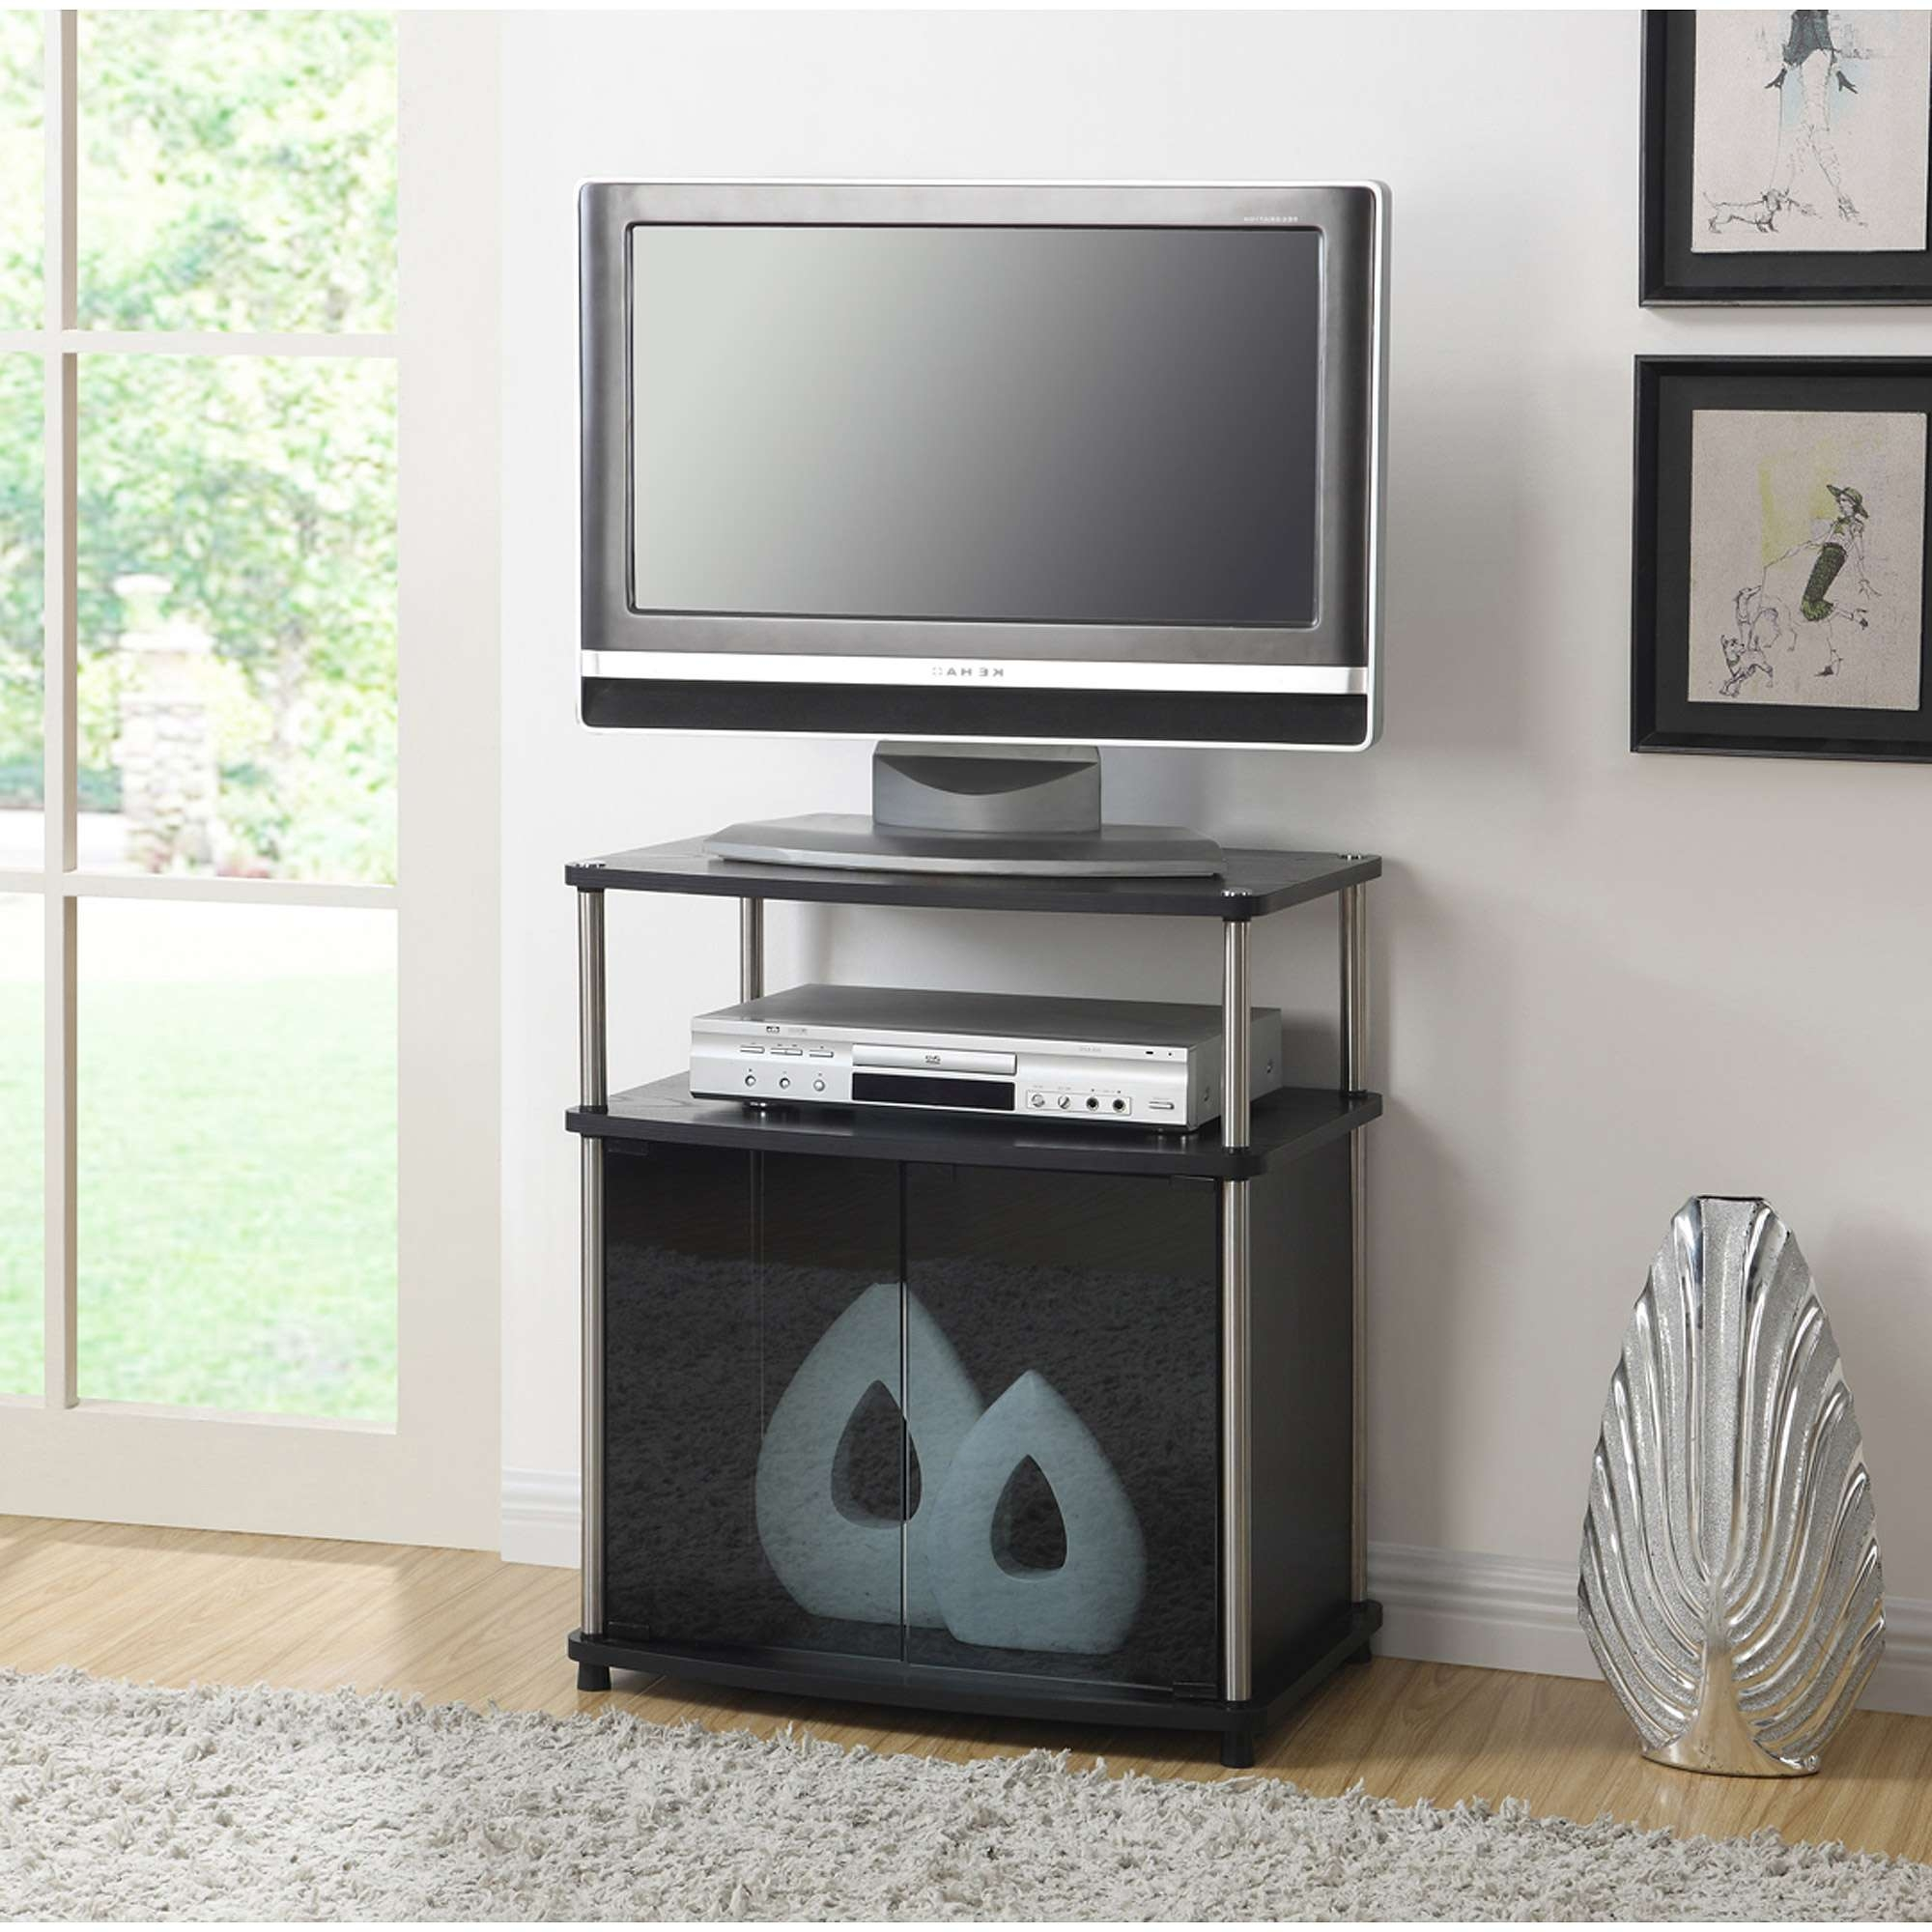 Tv : Bdua Amazing Tv Stands For Tube Tvs Amazon Com Furinno Dbr Bk With Elevated Tv Stands (View 12 of 15)